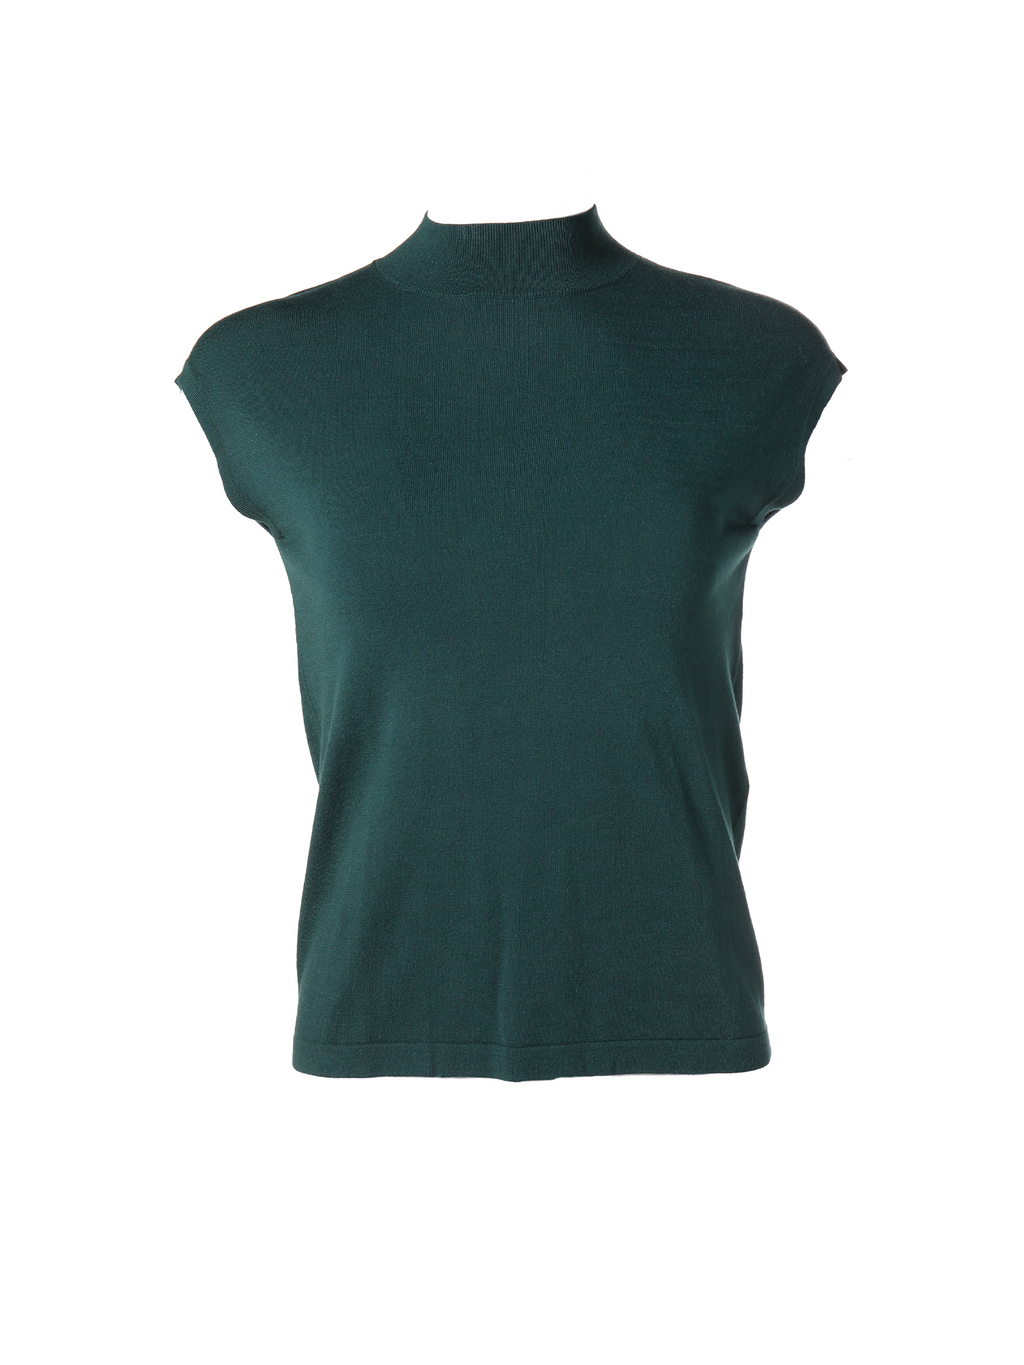 Max Mara Weekend Supremo Sleeveless Sweater Top